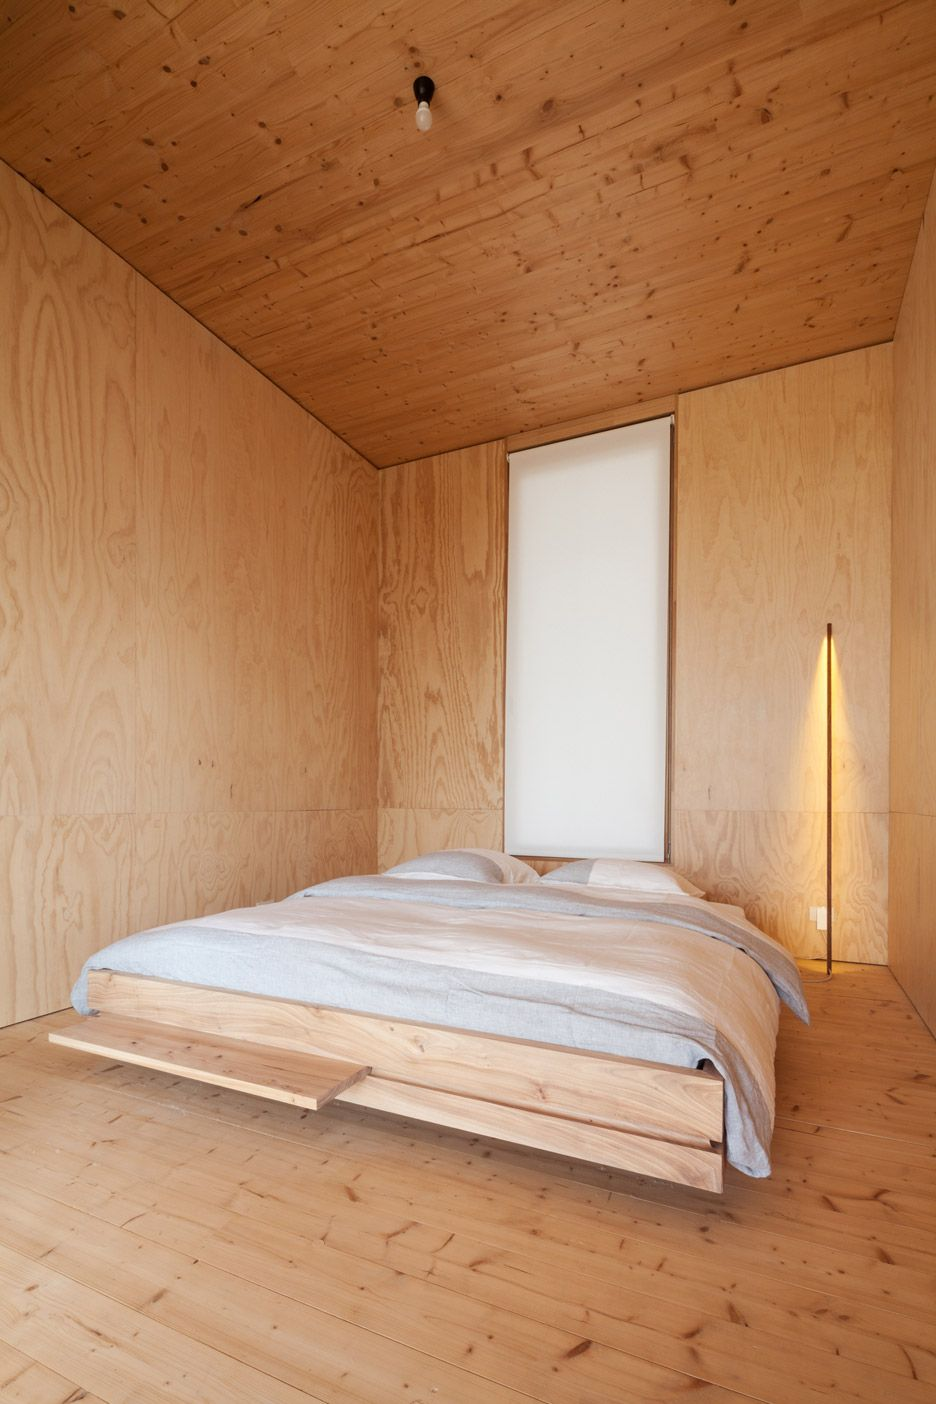 Architecture studio GAFPA used low cost materials to